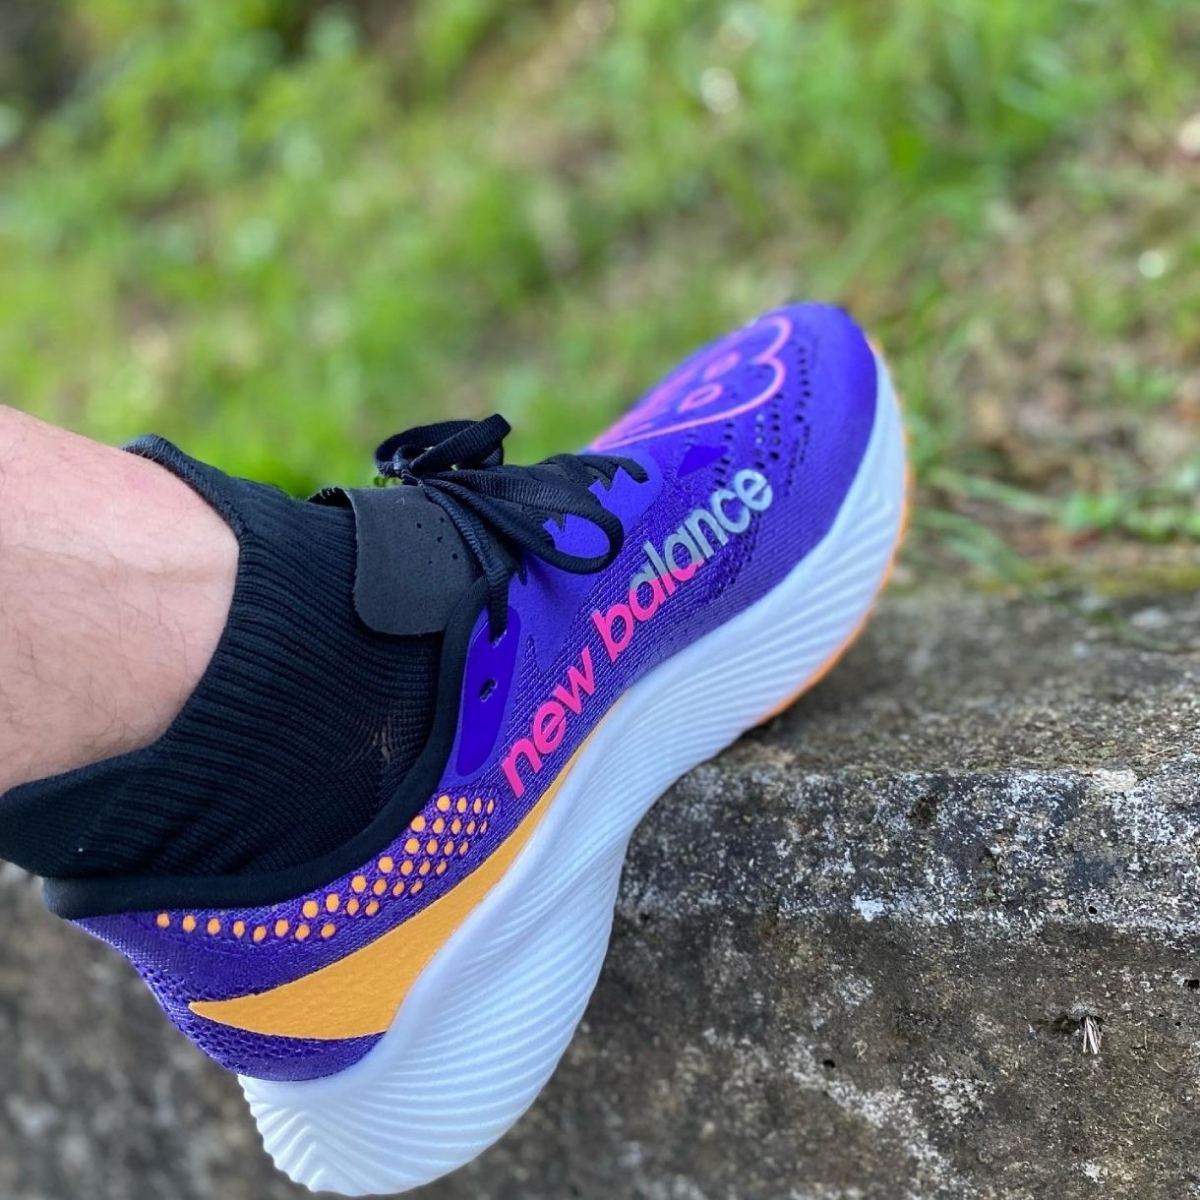 New Balance FuelCell RC Elite v2, review